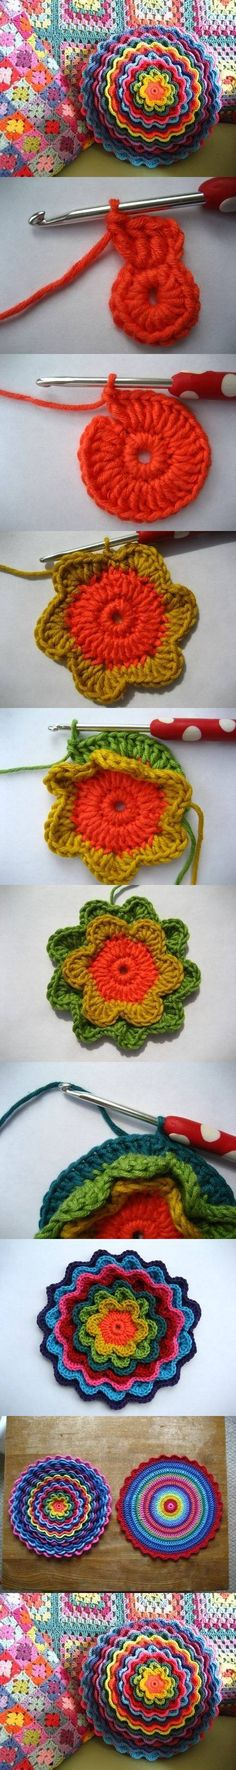 Magnifique Coussin Fleur Crochet DIY Wonderful DIY Crochet Flower Cushion I made this pillow and it turns out beautiful Diy Crochet Flowers, Crochet Diy, Crochet Amigurumi, Crochet Flower Patterns, Crochet Home, Love Crochet, Crochet Crafts, Yarn Crafts, Flower Diy